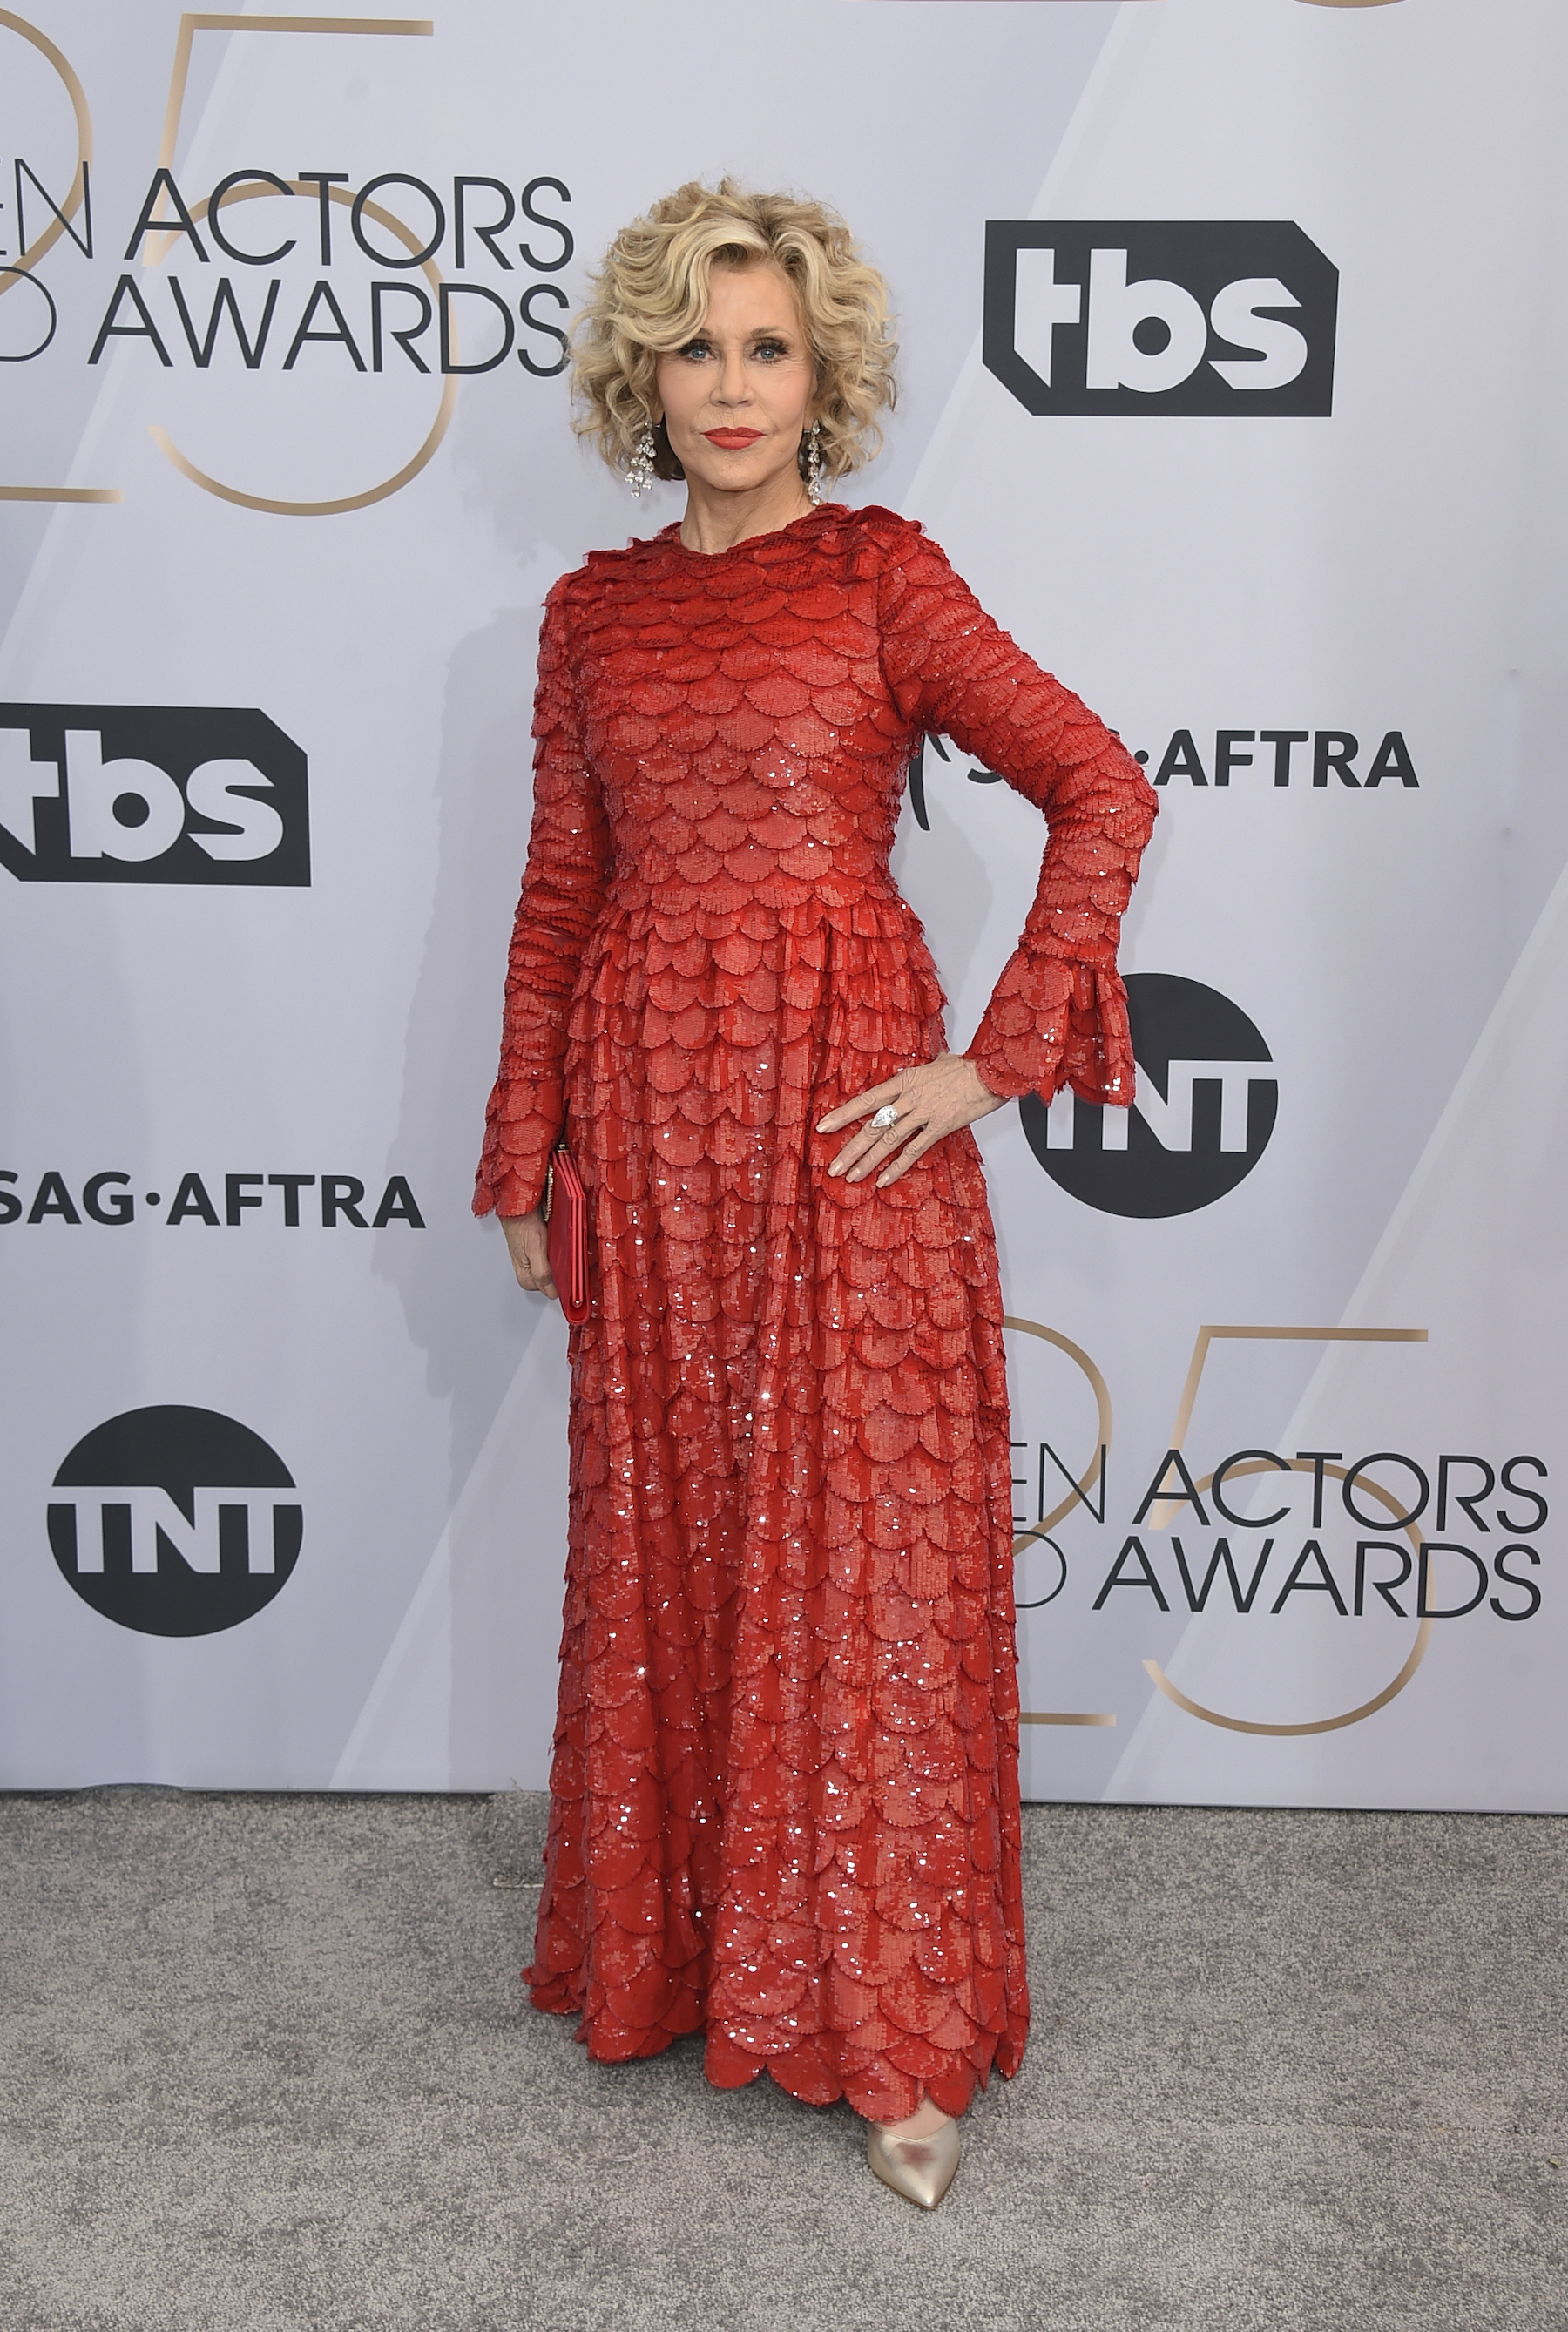 "<div class=""meta image-caption""><div class=""origin-logo origin-image ap""><span>AP</span></div><span class=""caption-text"">Jane Fonda arrives at the 25th annual Screen Actors Guild Awards at the Shrine Auditorium & Expo Hall on Sunday, Jan. 27, 2019, in Los Angeles. (Jordan Strauss/Invision/AP)</span></div>"